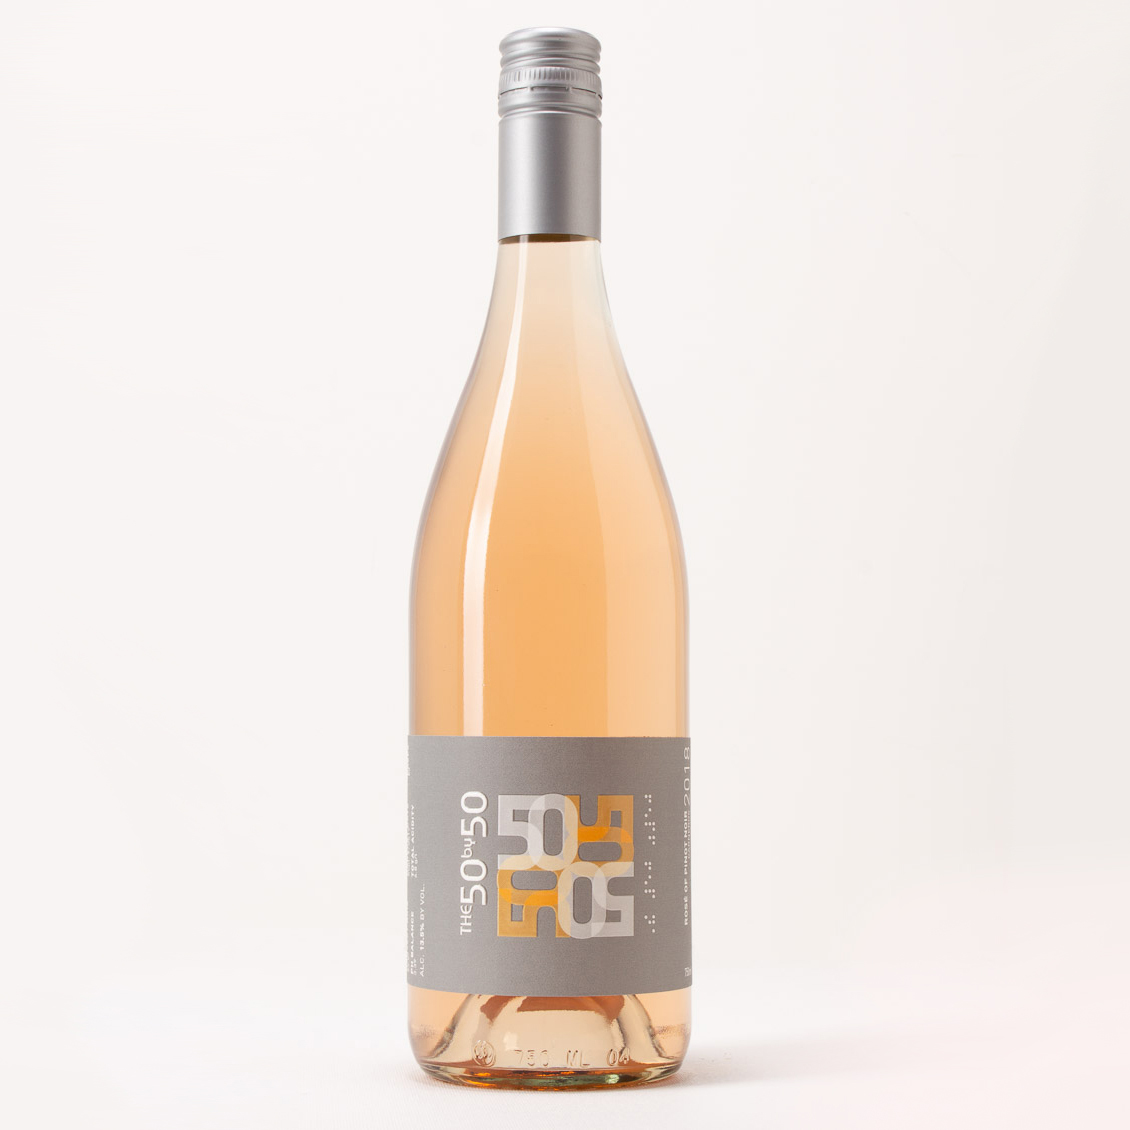 The Fifty by Fifty 2019 Carneros Rosé of Pinot Noir